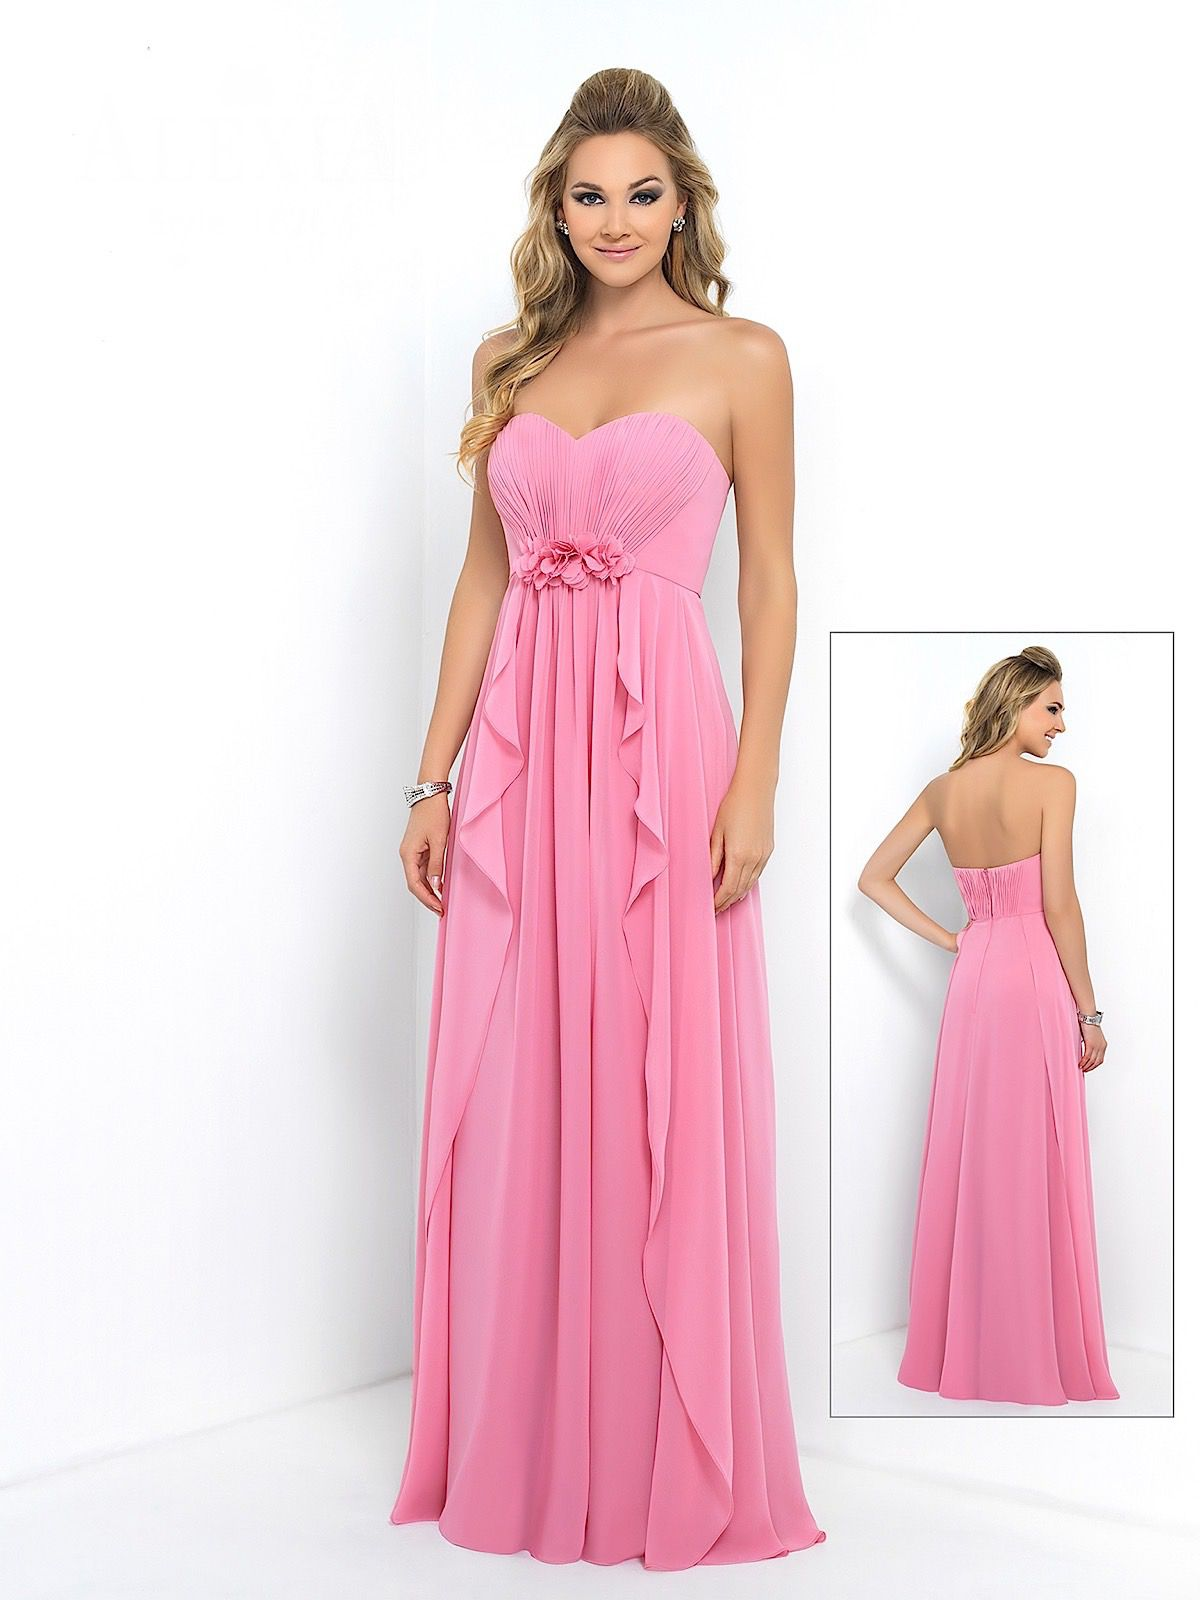 BRIDESMAIDS DRESS STYLE BM0182L FULL LENGTH - The Bridal Company